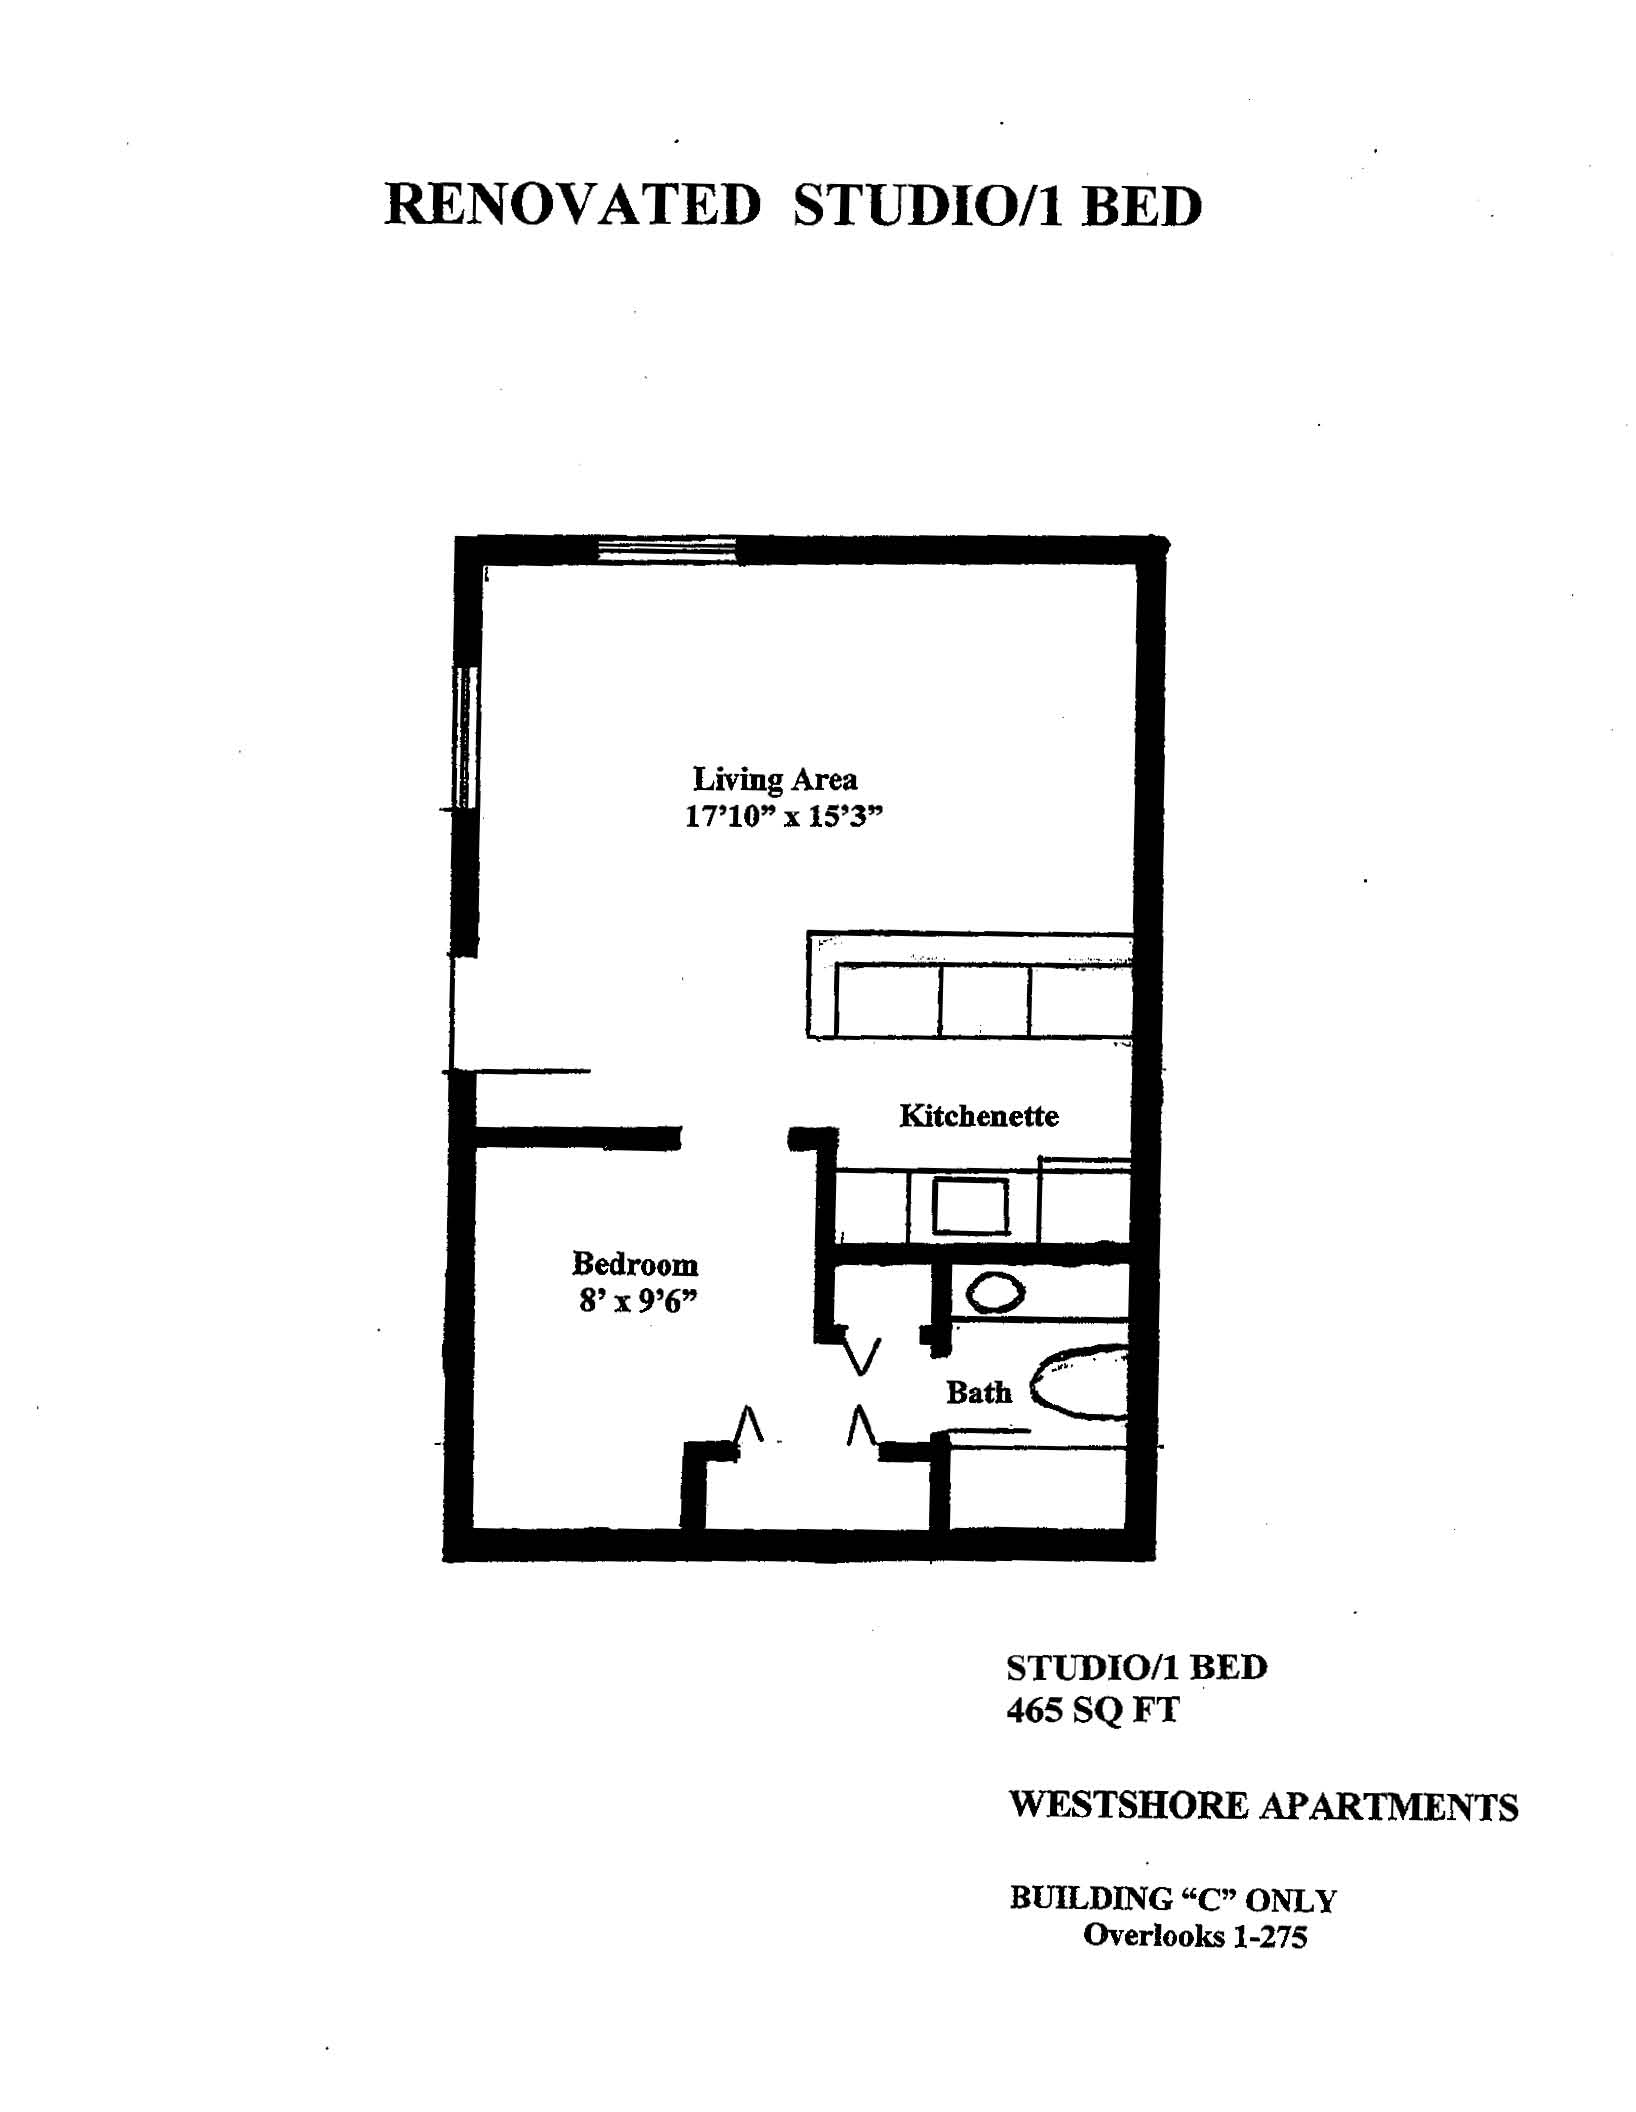 WestShore Apartments/Embassy Apartments - Floorplan - Westshore- Studio/1 Bed Mini